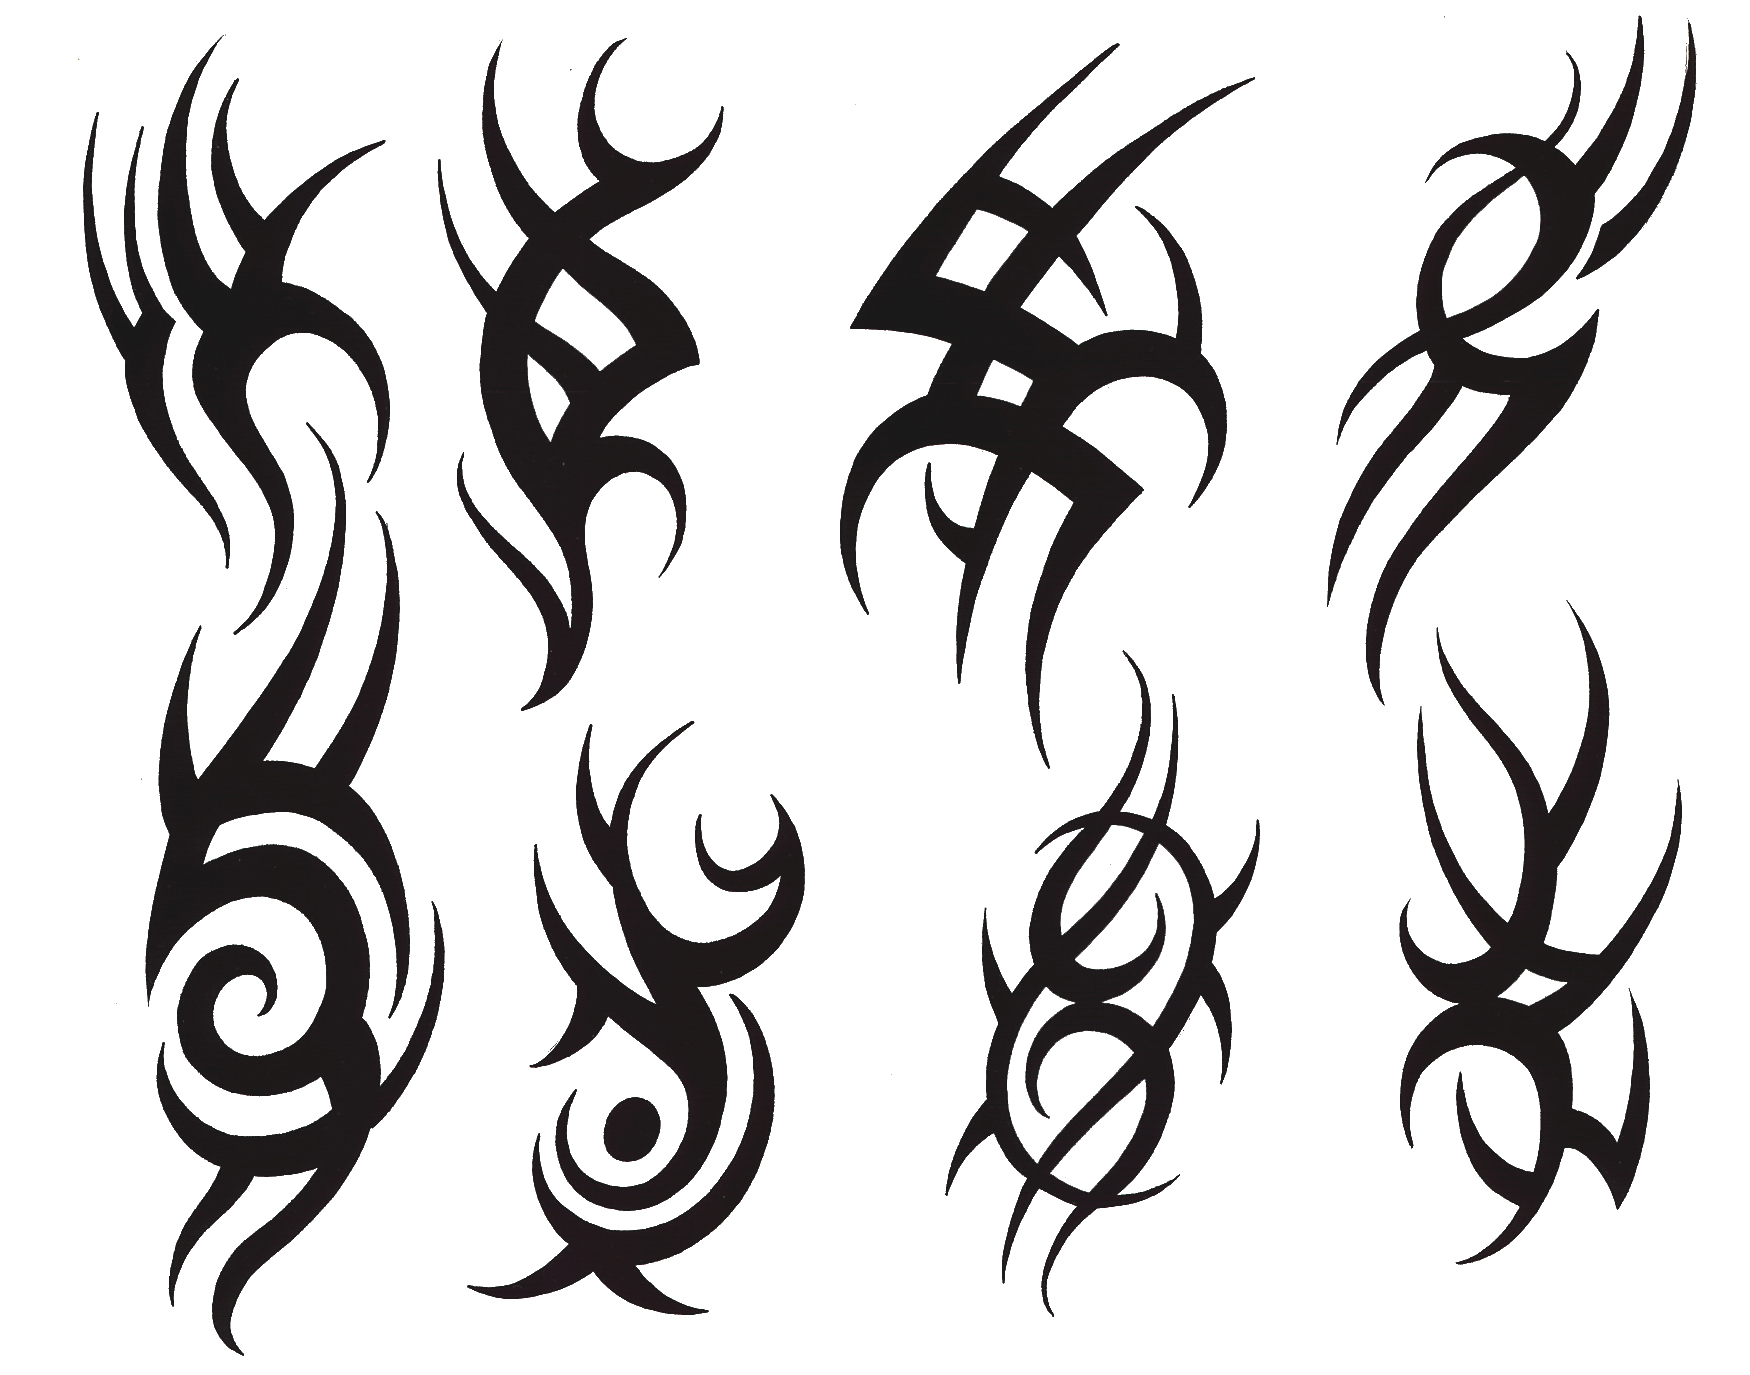 Free Tattoo Tribal, Download Free Clip Art, Free Clip Art on.